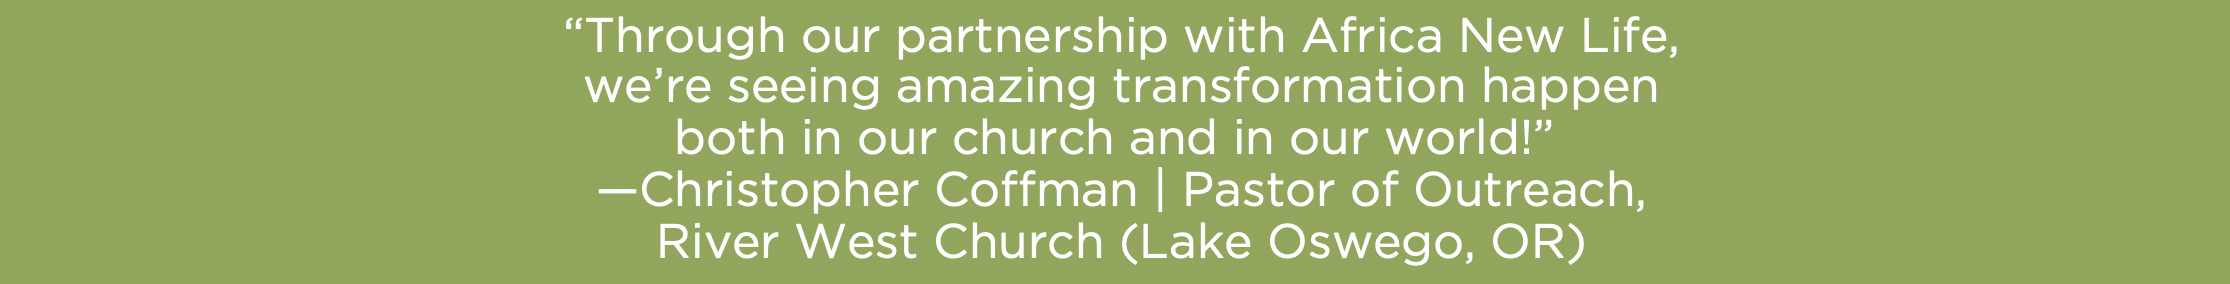 Sponsorship Sunday - Pastor Quote